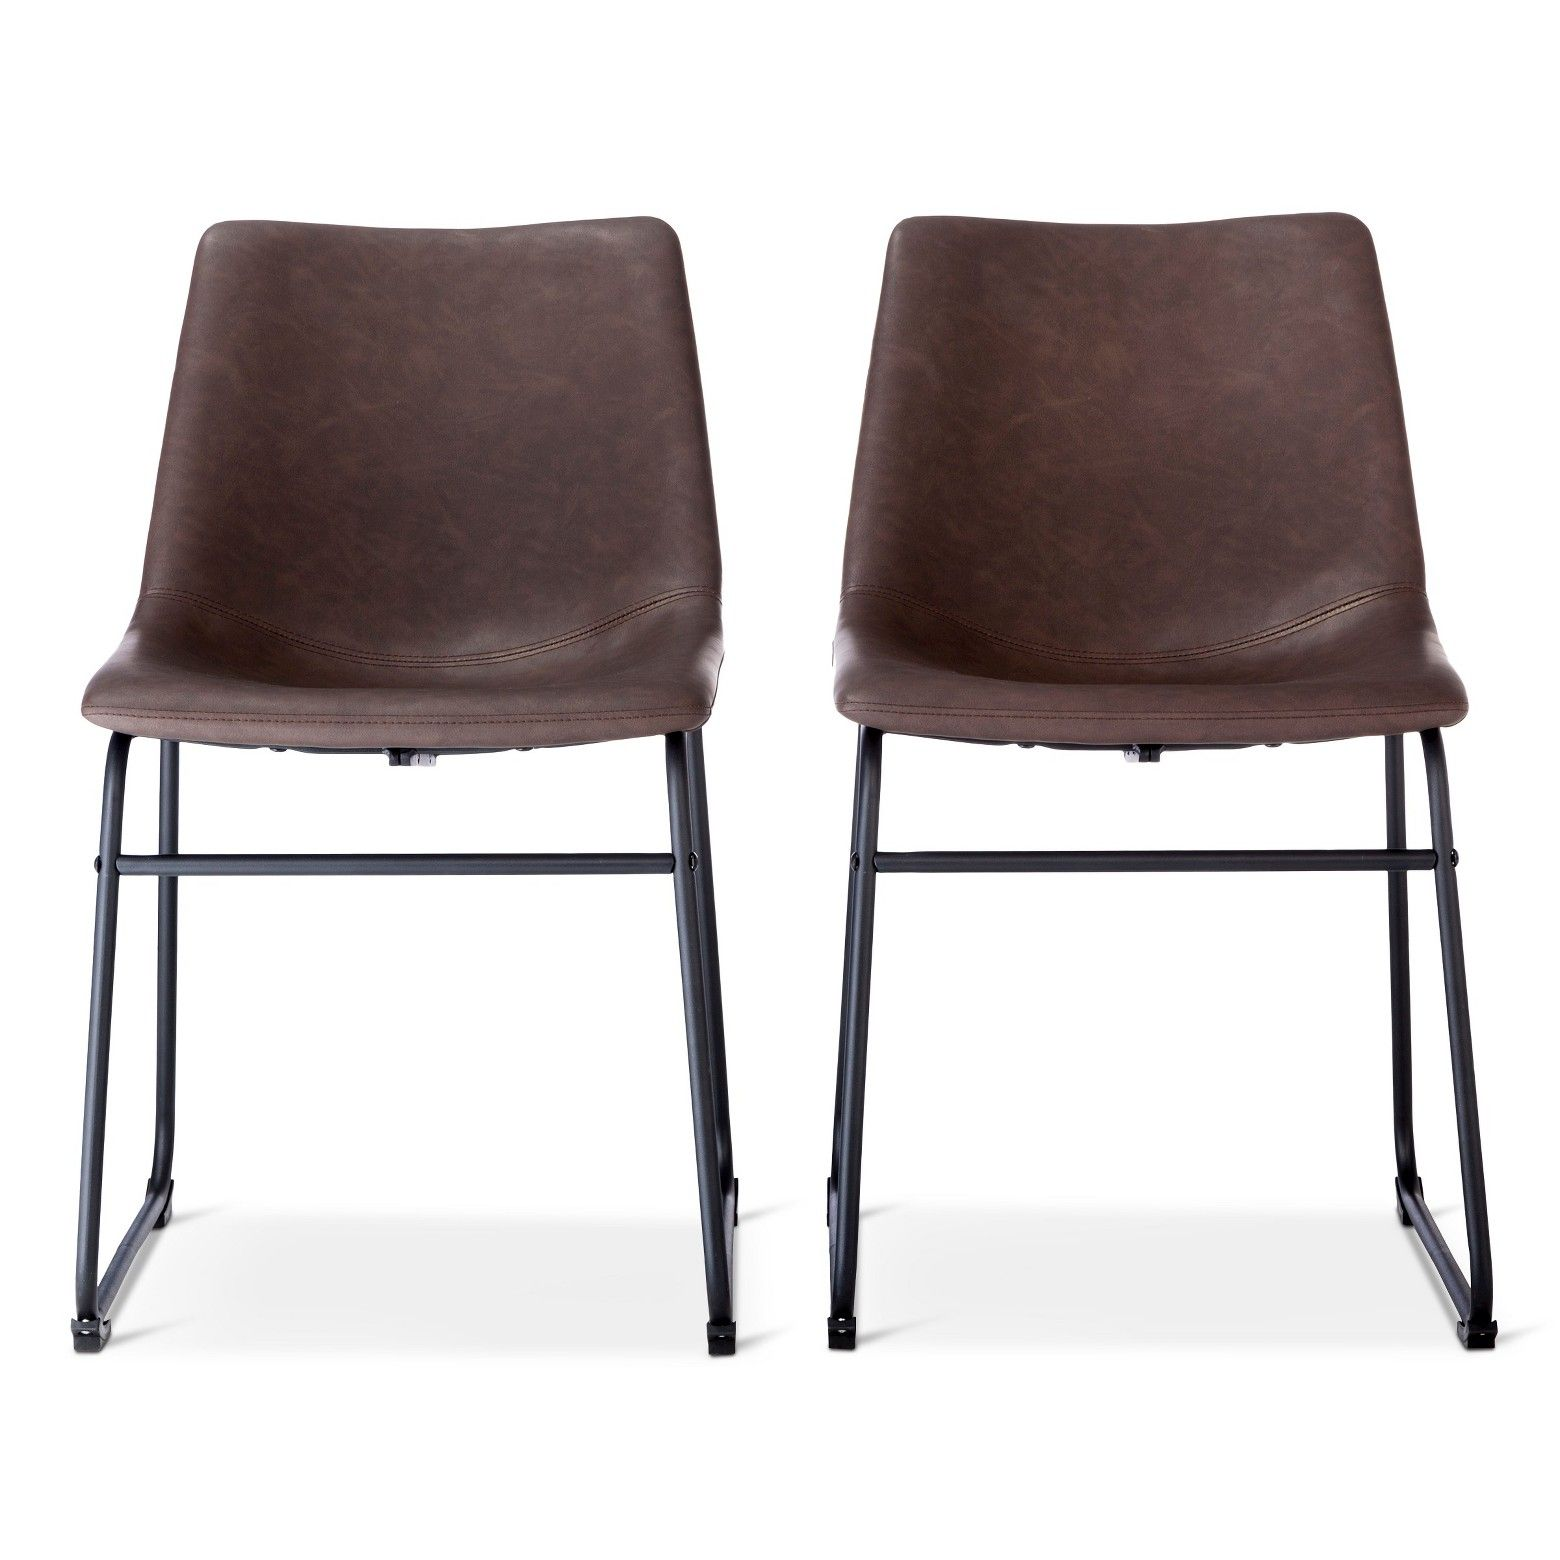 Marvelous Faux Leather Industrial Dining Chairs From Target On Sale Bralicious Painted Fabric Chair Ideas Braliciousco